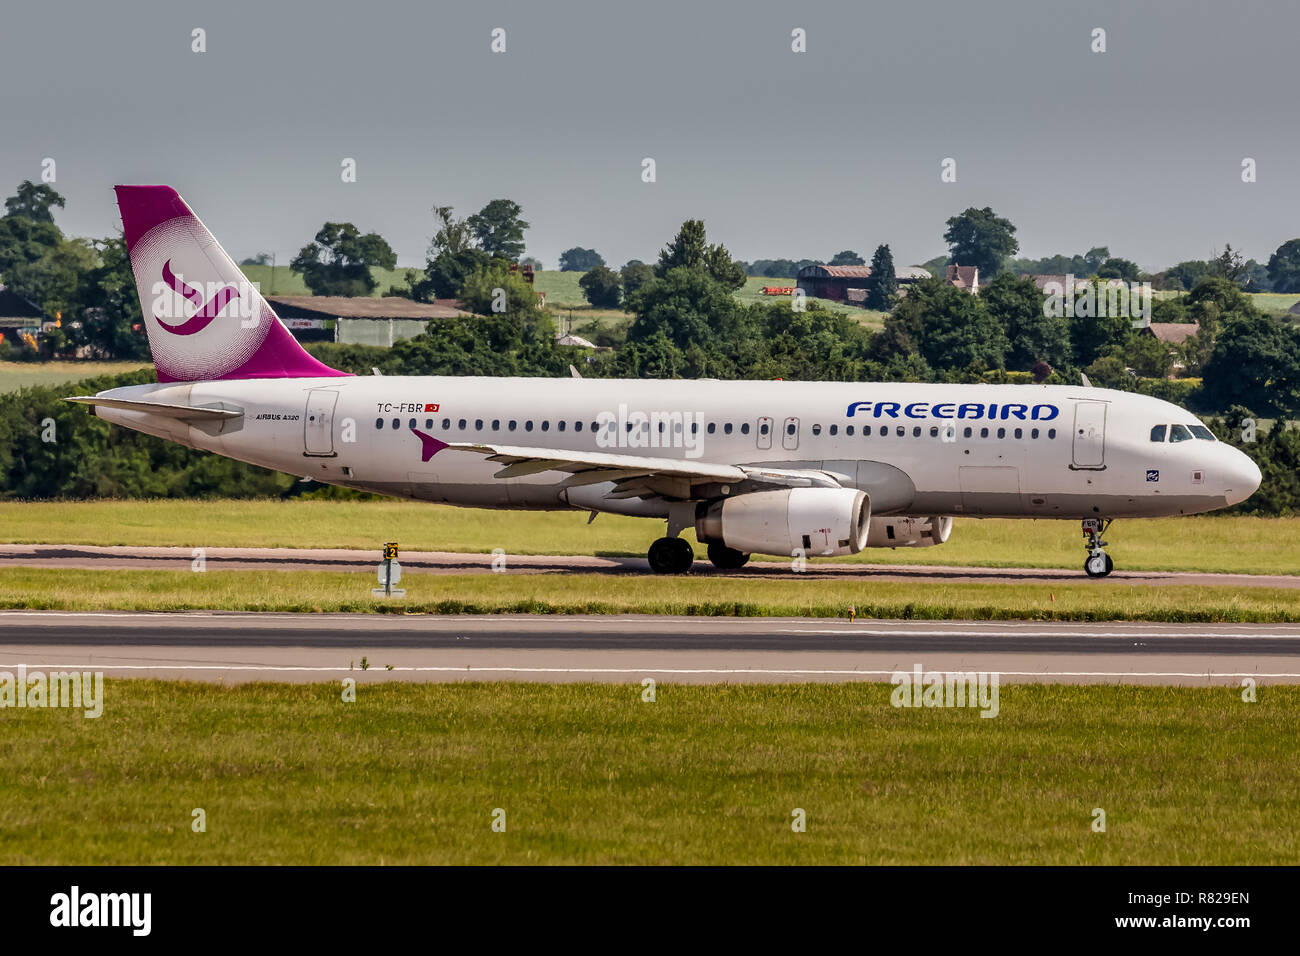 A Freebird Airlines Airbus A320, registration TC-FBR, taxying on the runway at London Luton Airport in England. - Stock Image